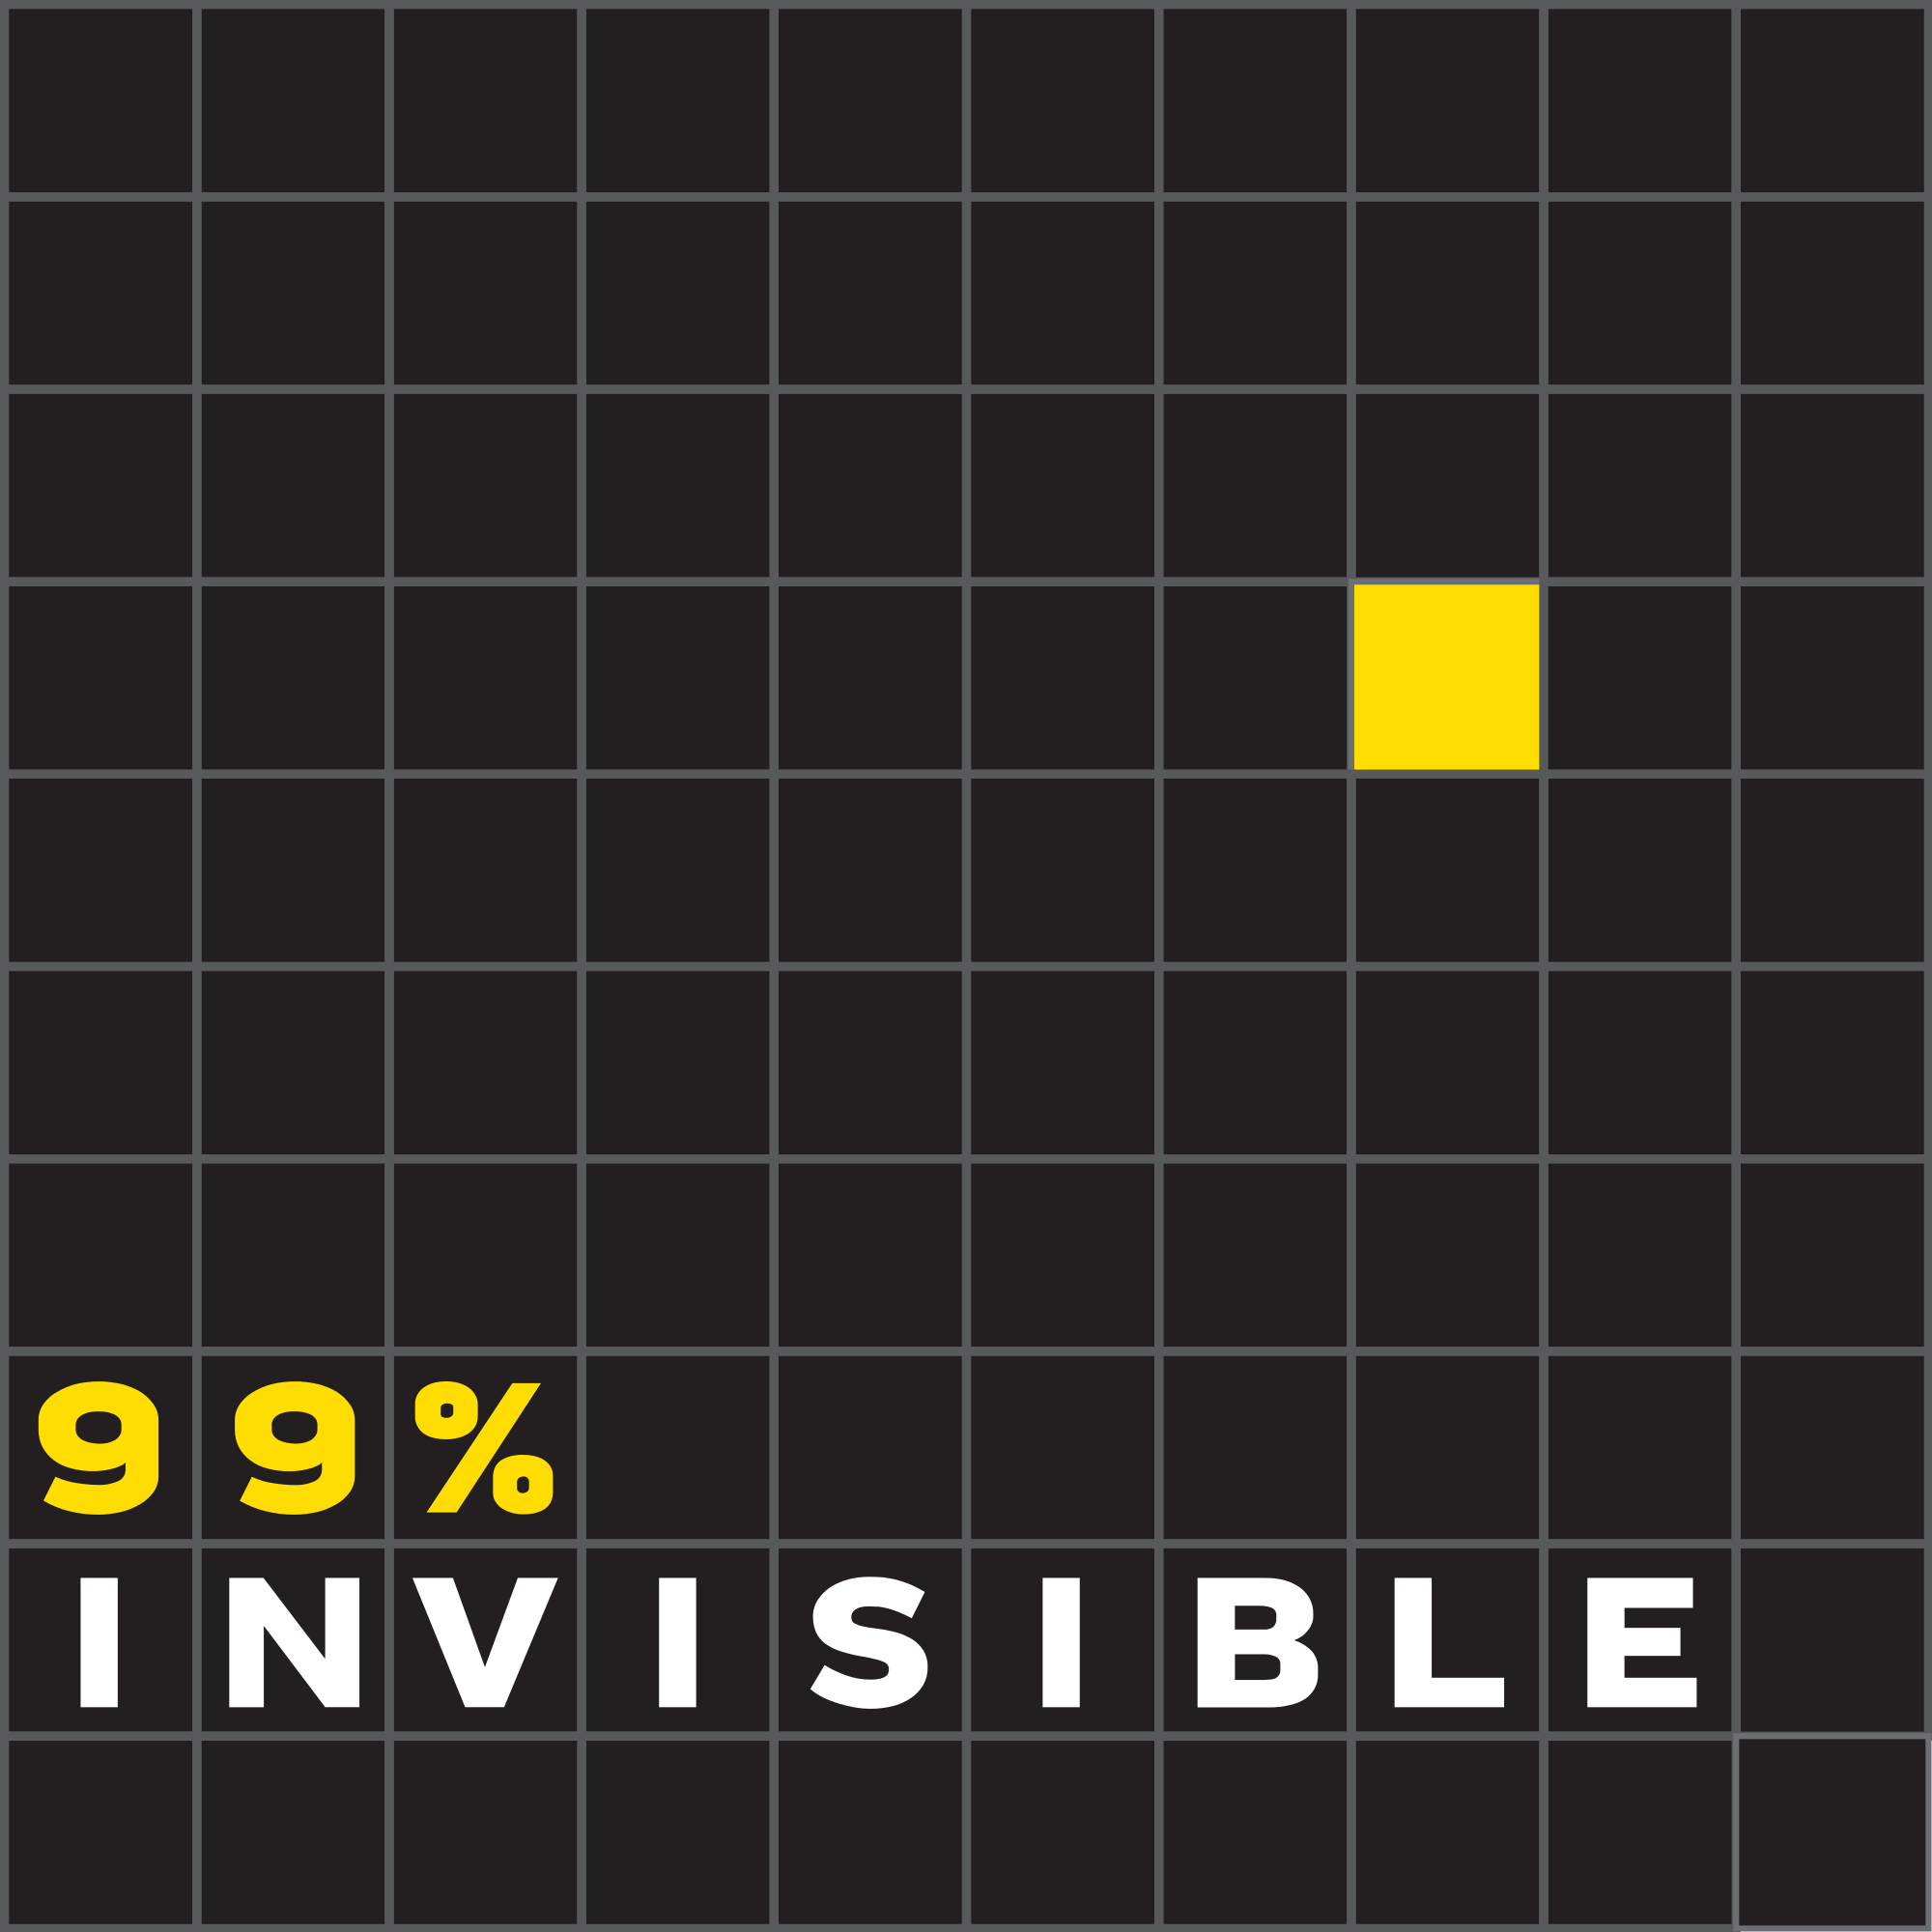 image from 99percentinvisible.org